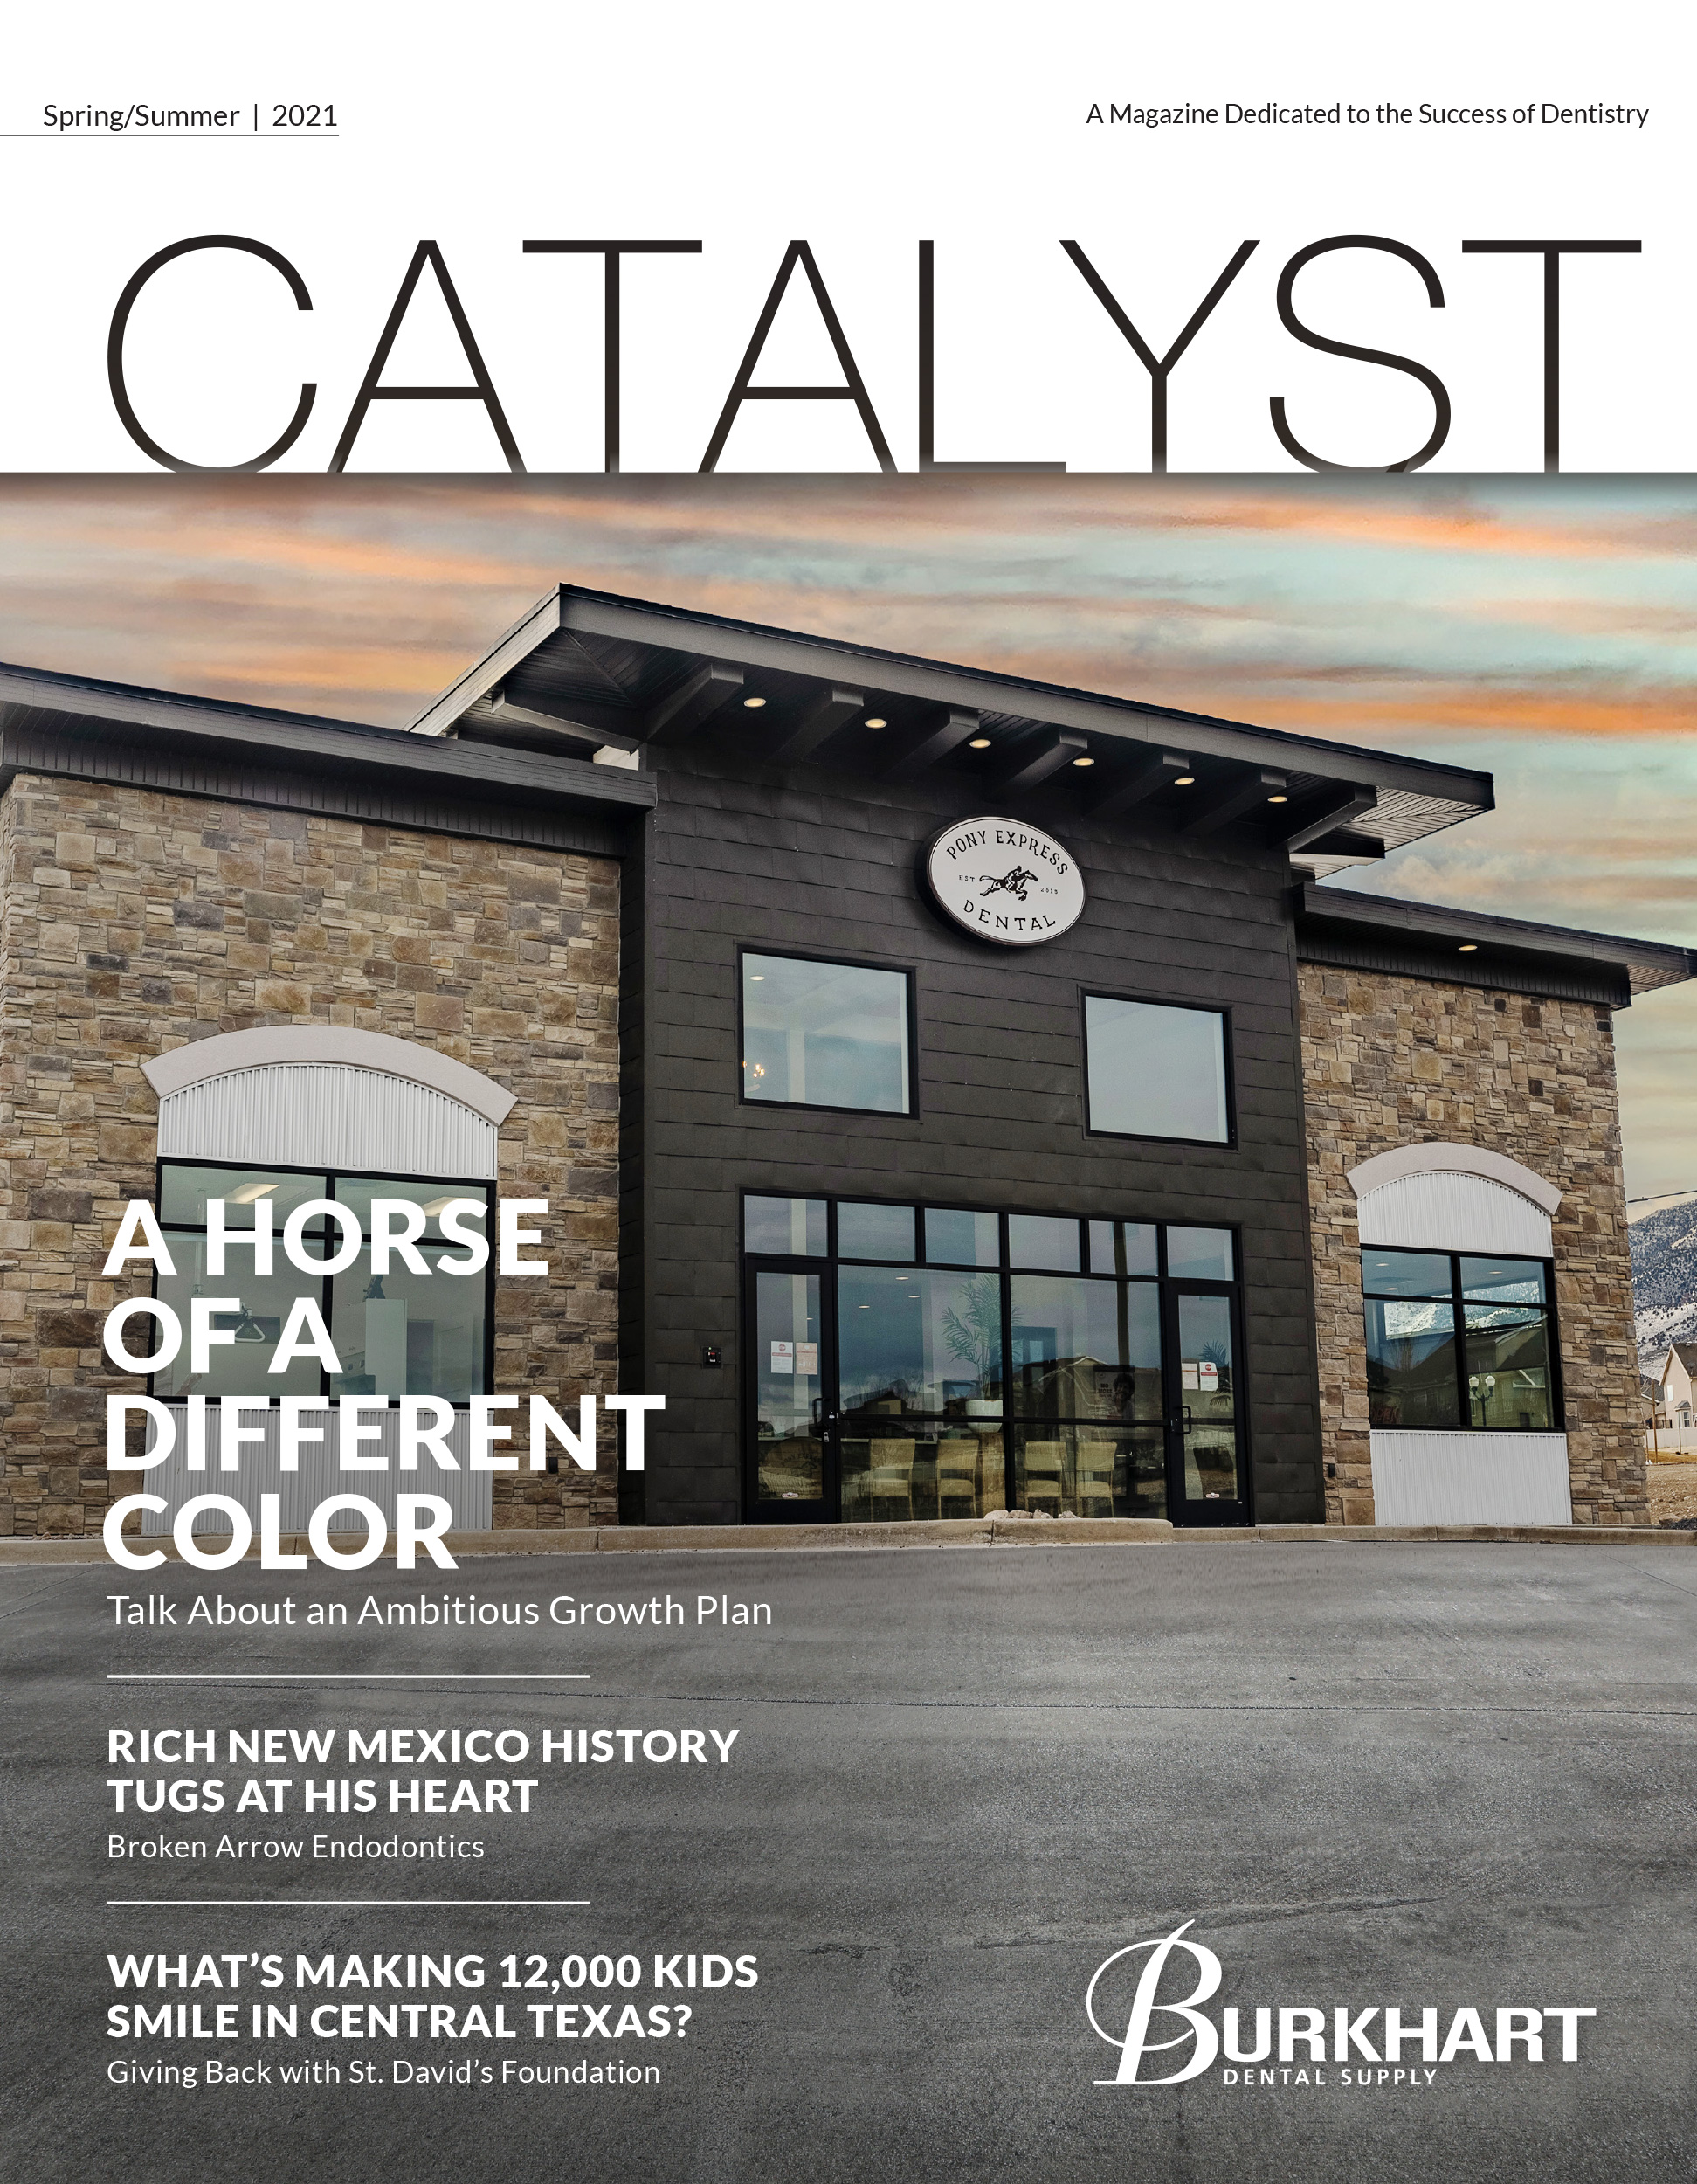 Catalyst Spring/Summer 2021 cover. Featuring an exterior photograph of Pony Express Dental practice taken early one morning just as the pinks of sunrise grace the sky.